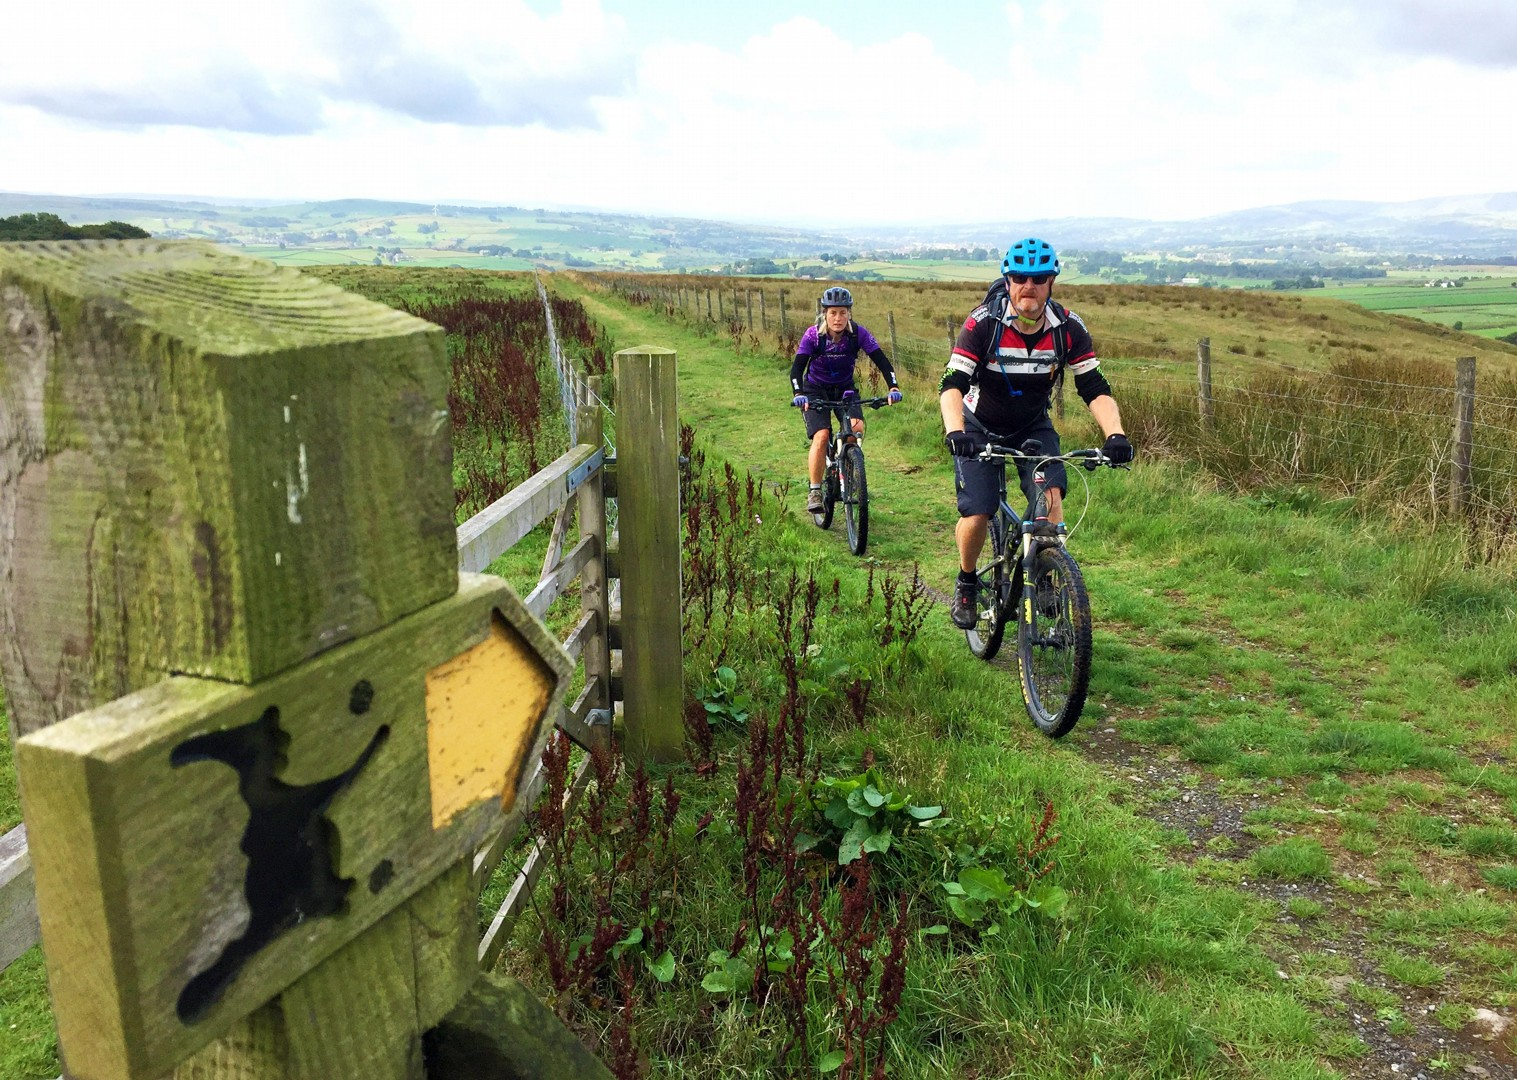 mtb-mountain-biking-cumbria-yorkshire-lancashire.JPG - UK - Pennine Bridleway - Guided Mountain Bike Weekend - Mountain Biking